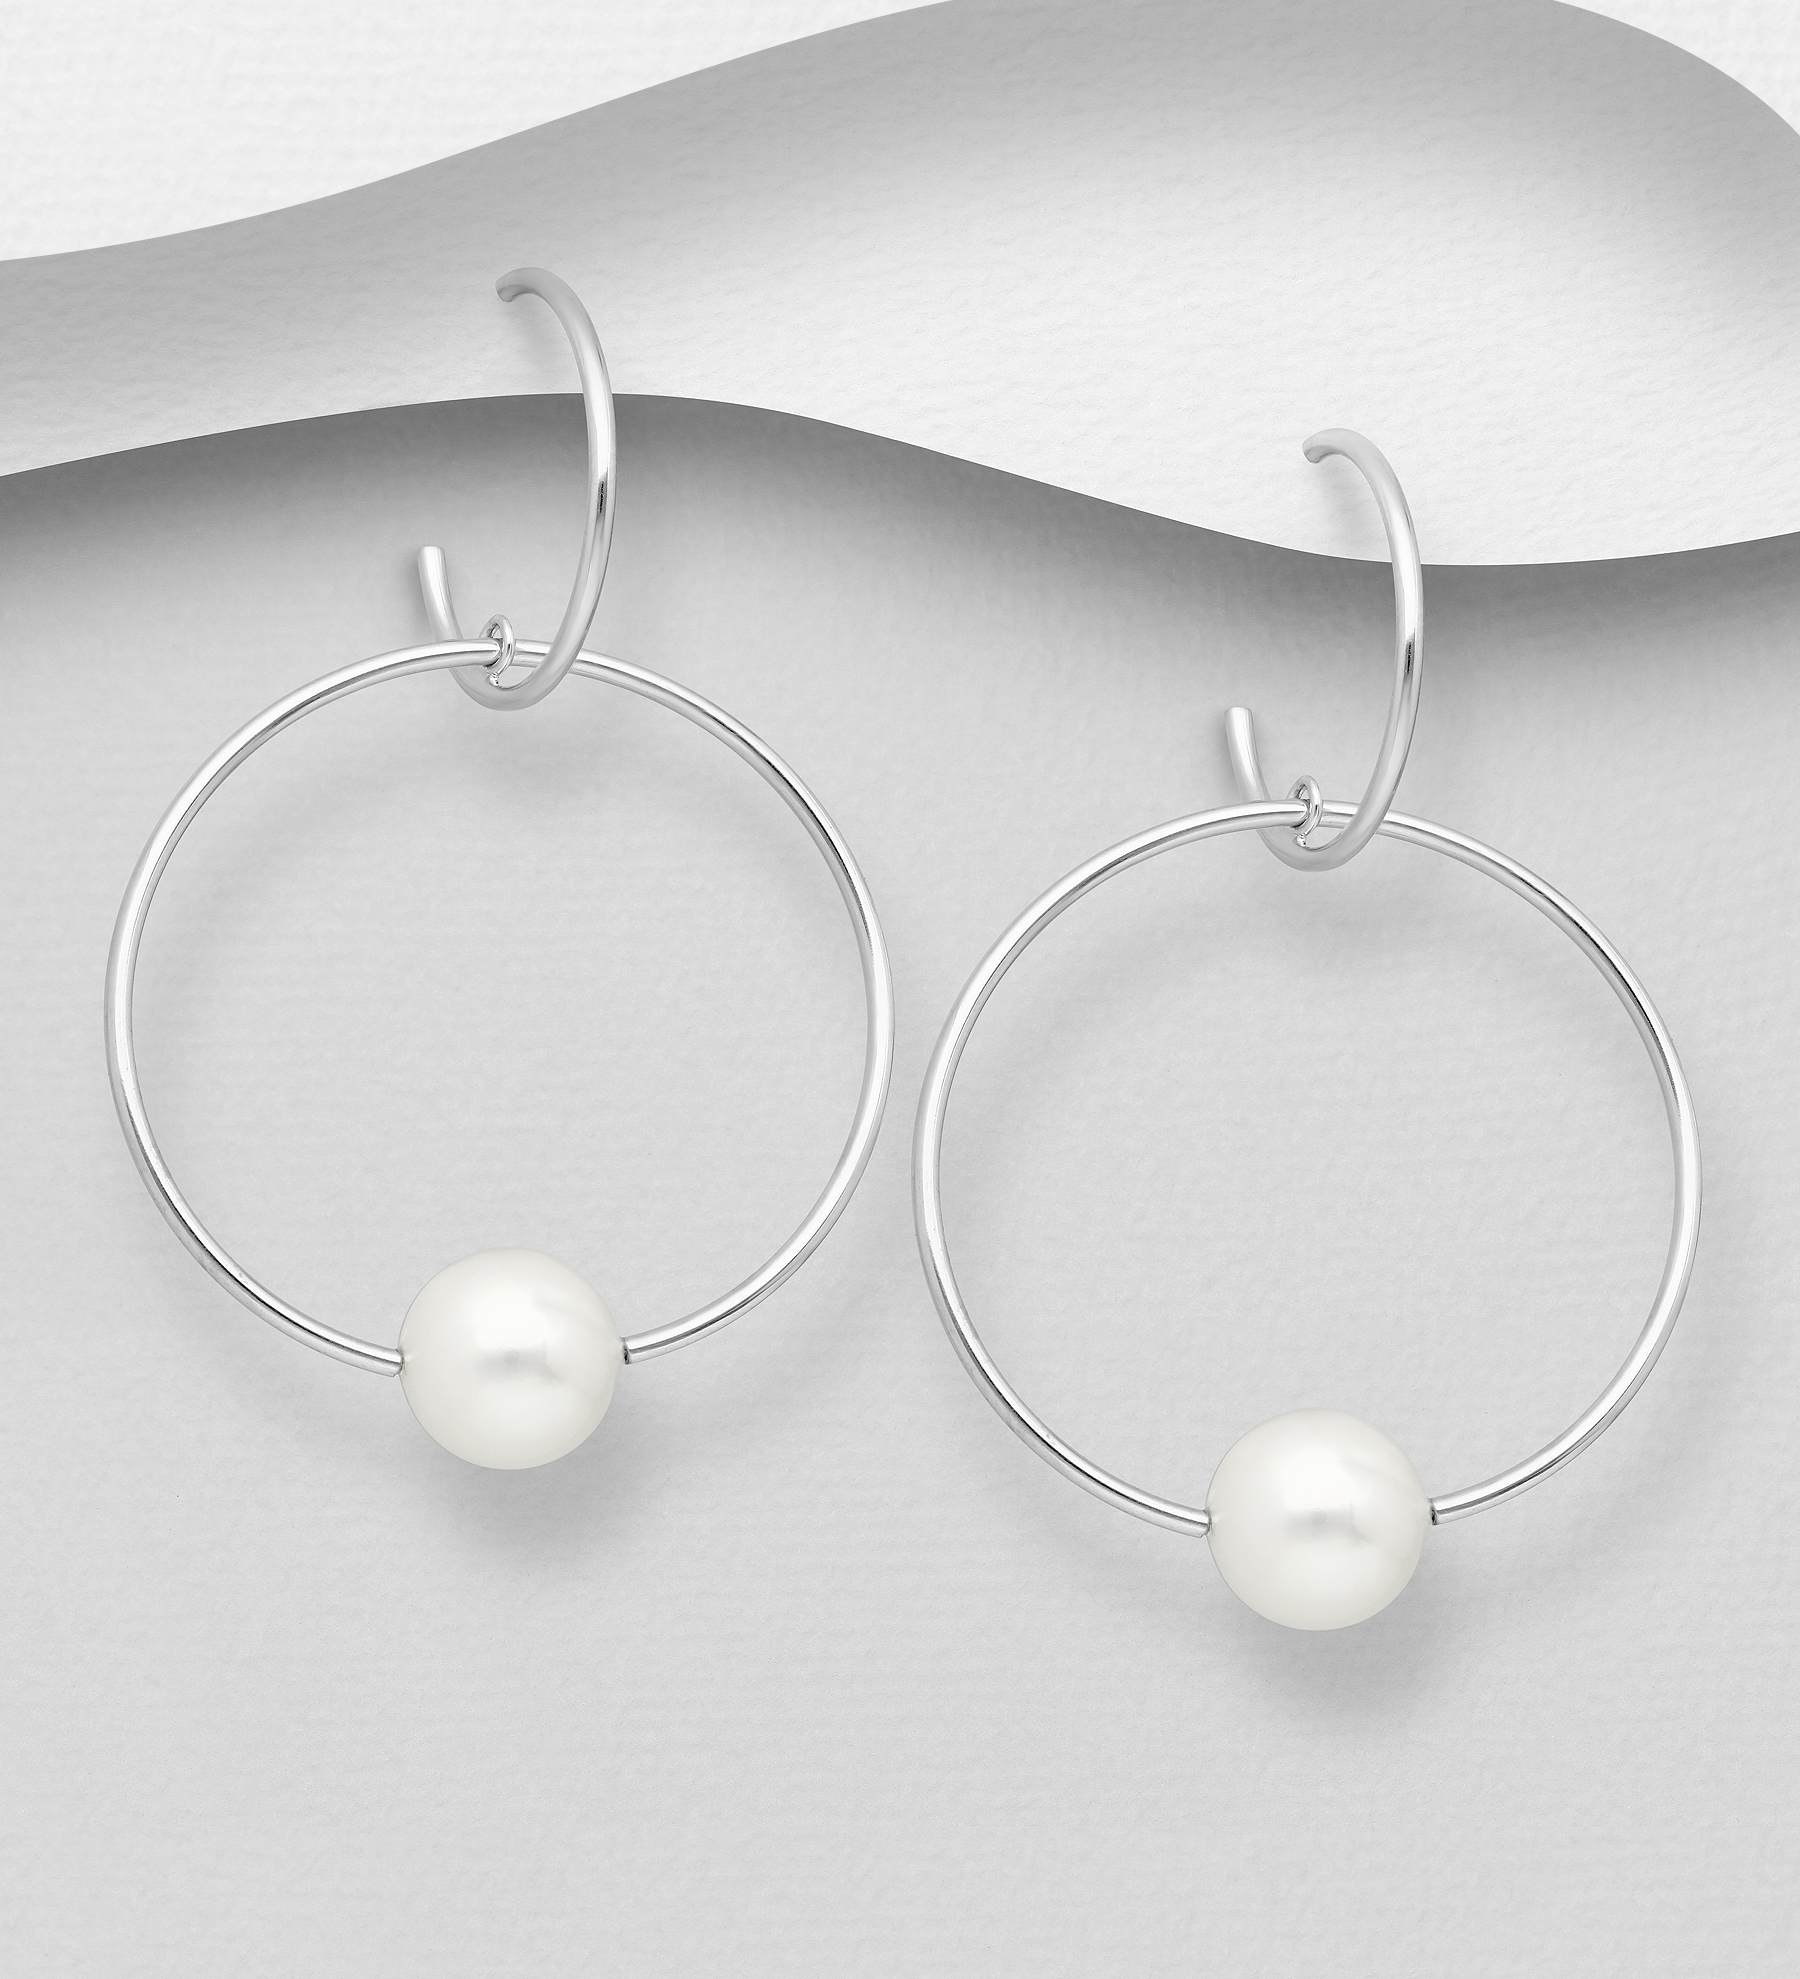 382-5426 - 925 Sterling Silver Push-Back Hoop Links Earrings Decorated with Freshwater Pearls